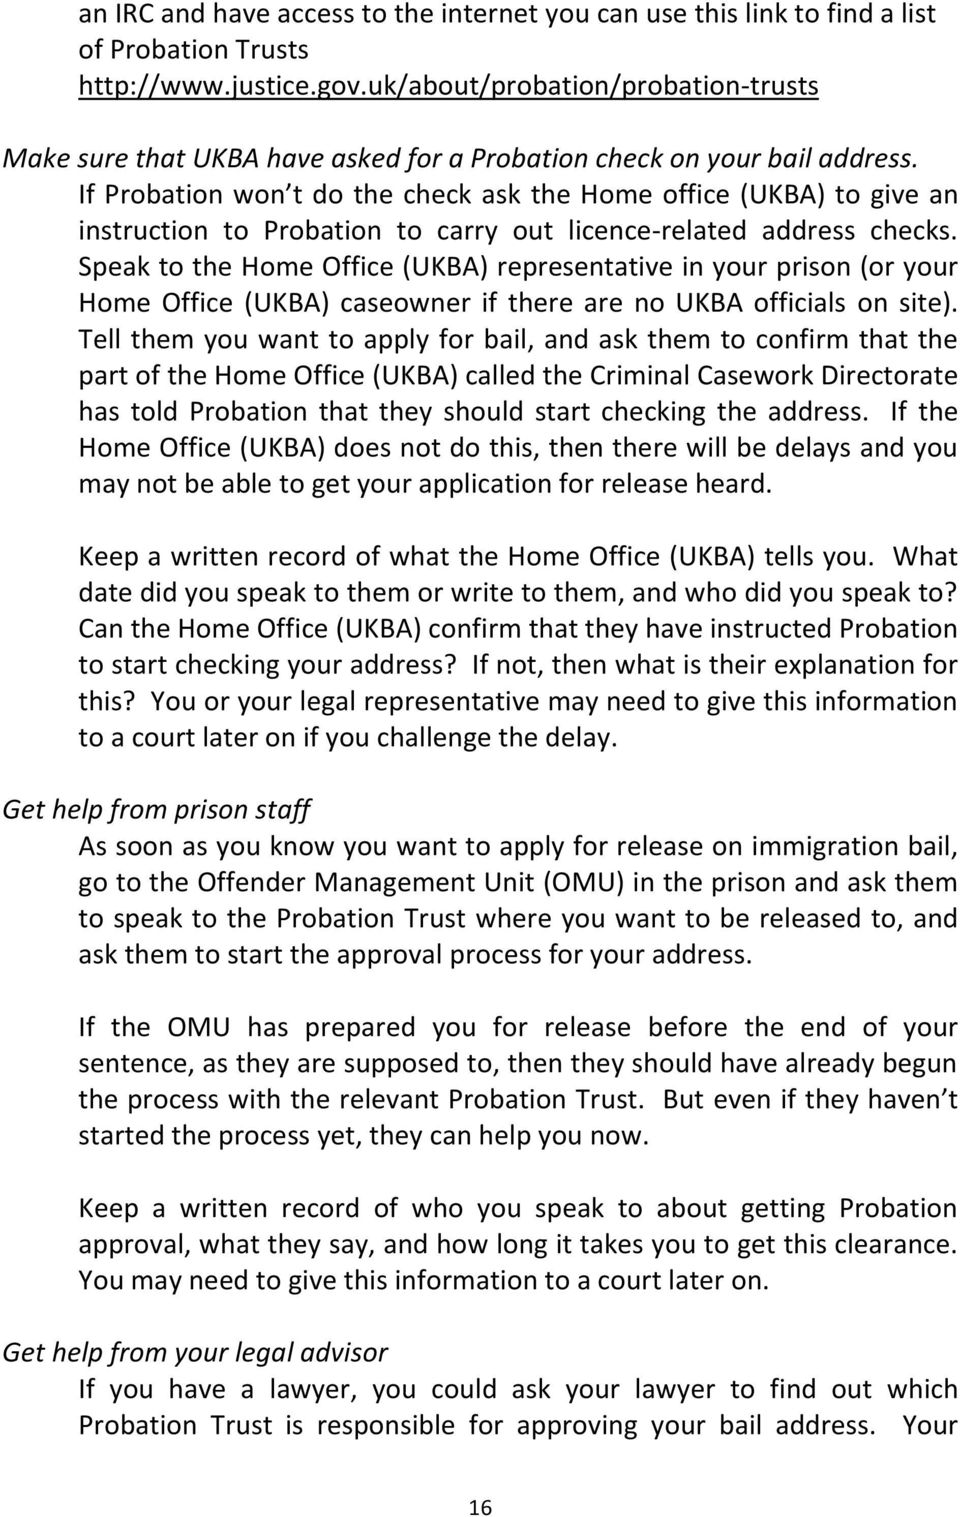 If Probation won t do the check ask the Home office (UKBA) to give an instruction to Probation to carry out licence-related address checks.